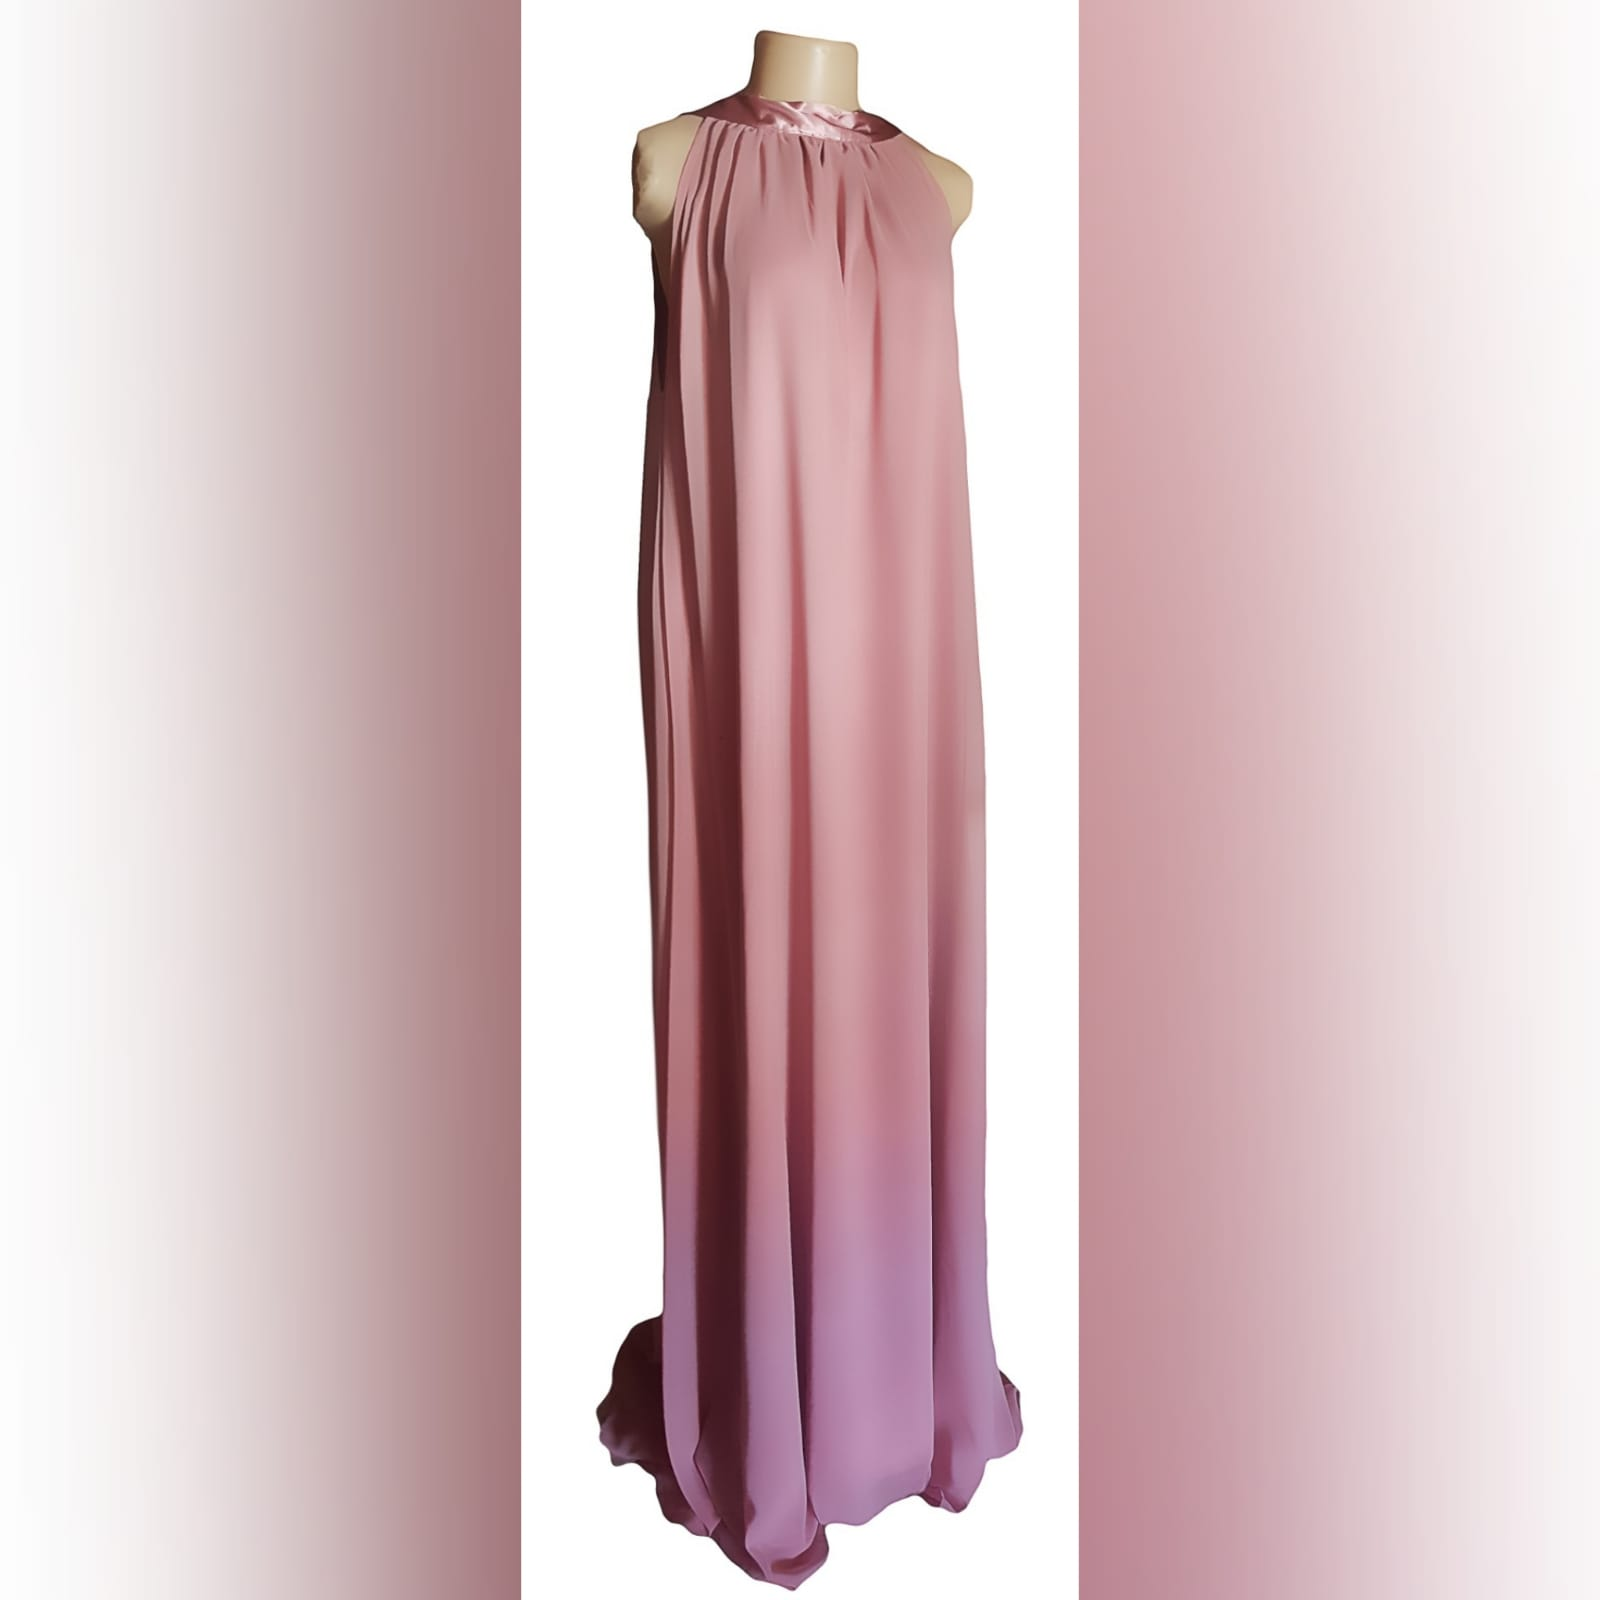 Long pink chiffon ceremony dress created for a wedding 9 long pink chiffon ceremony dress created for a wedding, a client in south africa. A long flowy dress with a satin ribbon on the back neckline. With a matching lipstick bag